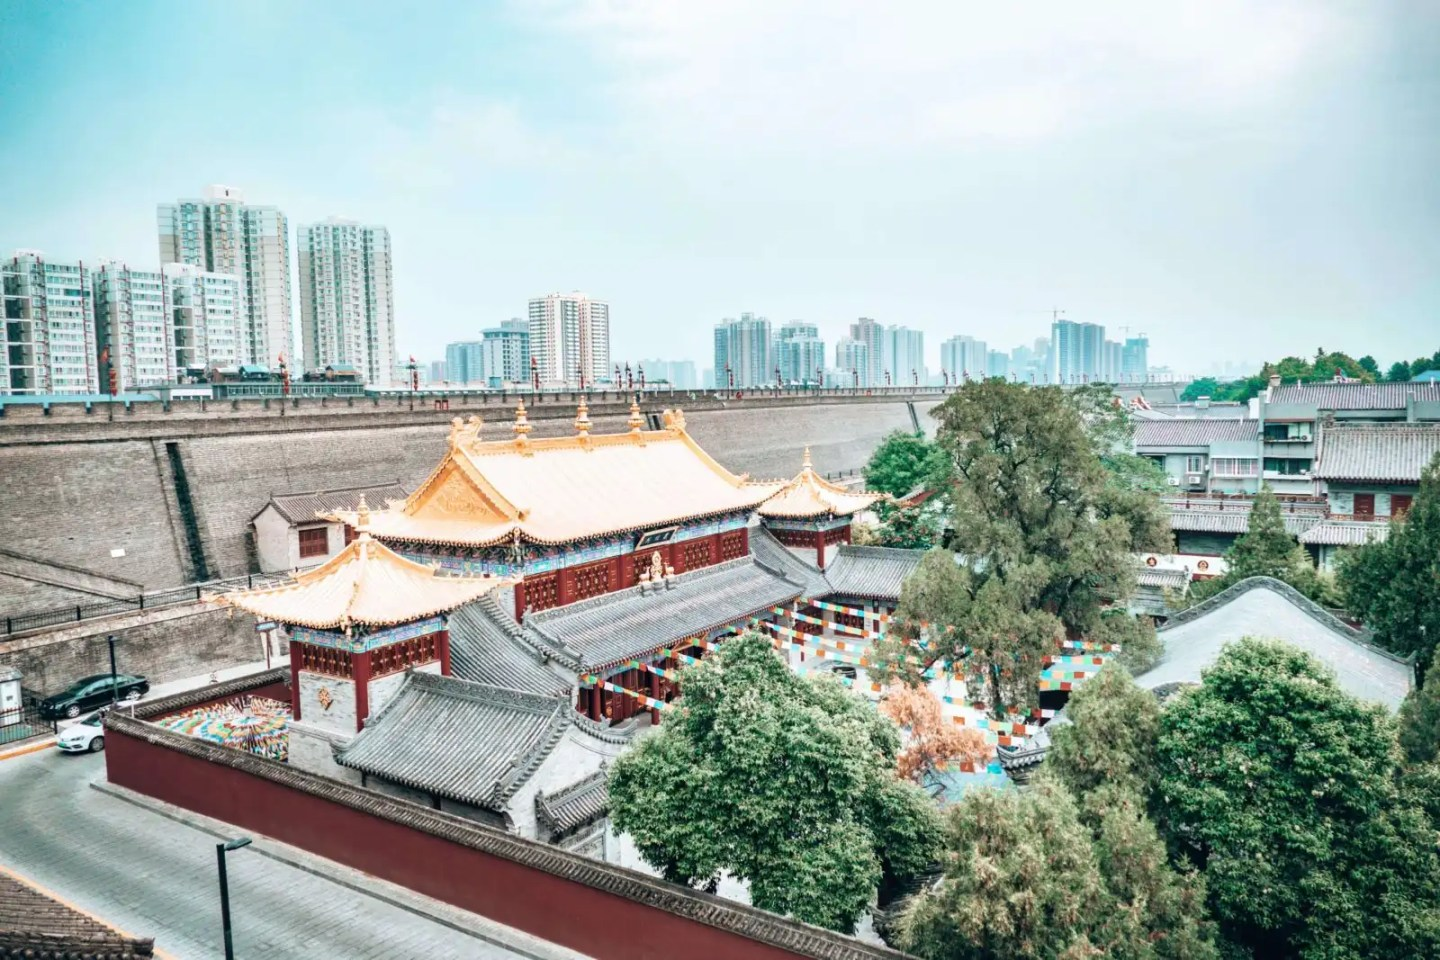 Image of the Guangren temple in Xian China